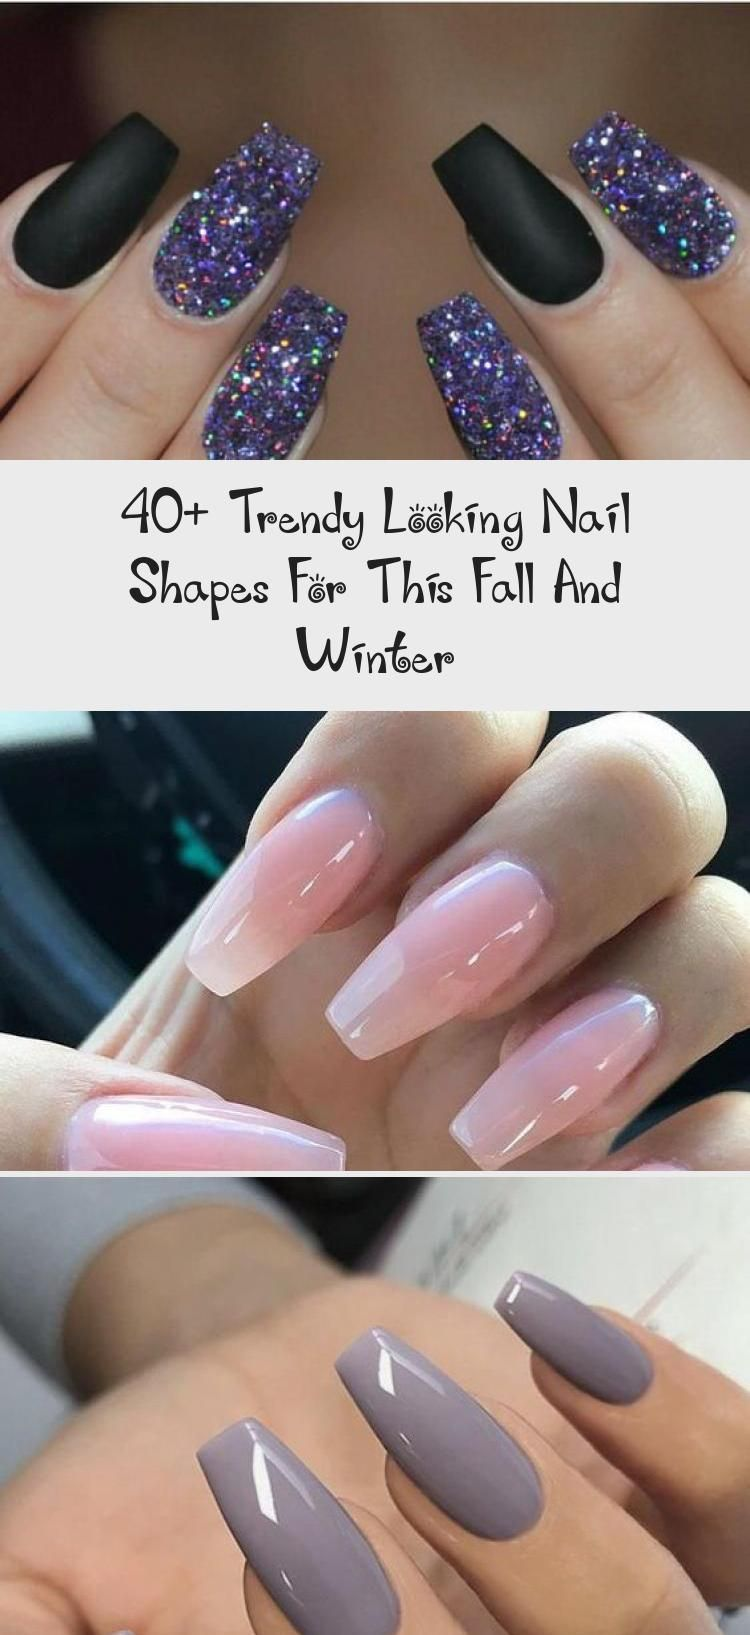 40+ Trendy Looking Nail Shapes For This Fall And Winter – NAILS